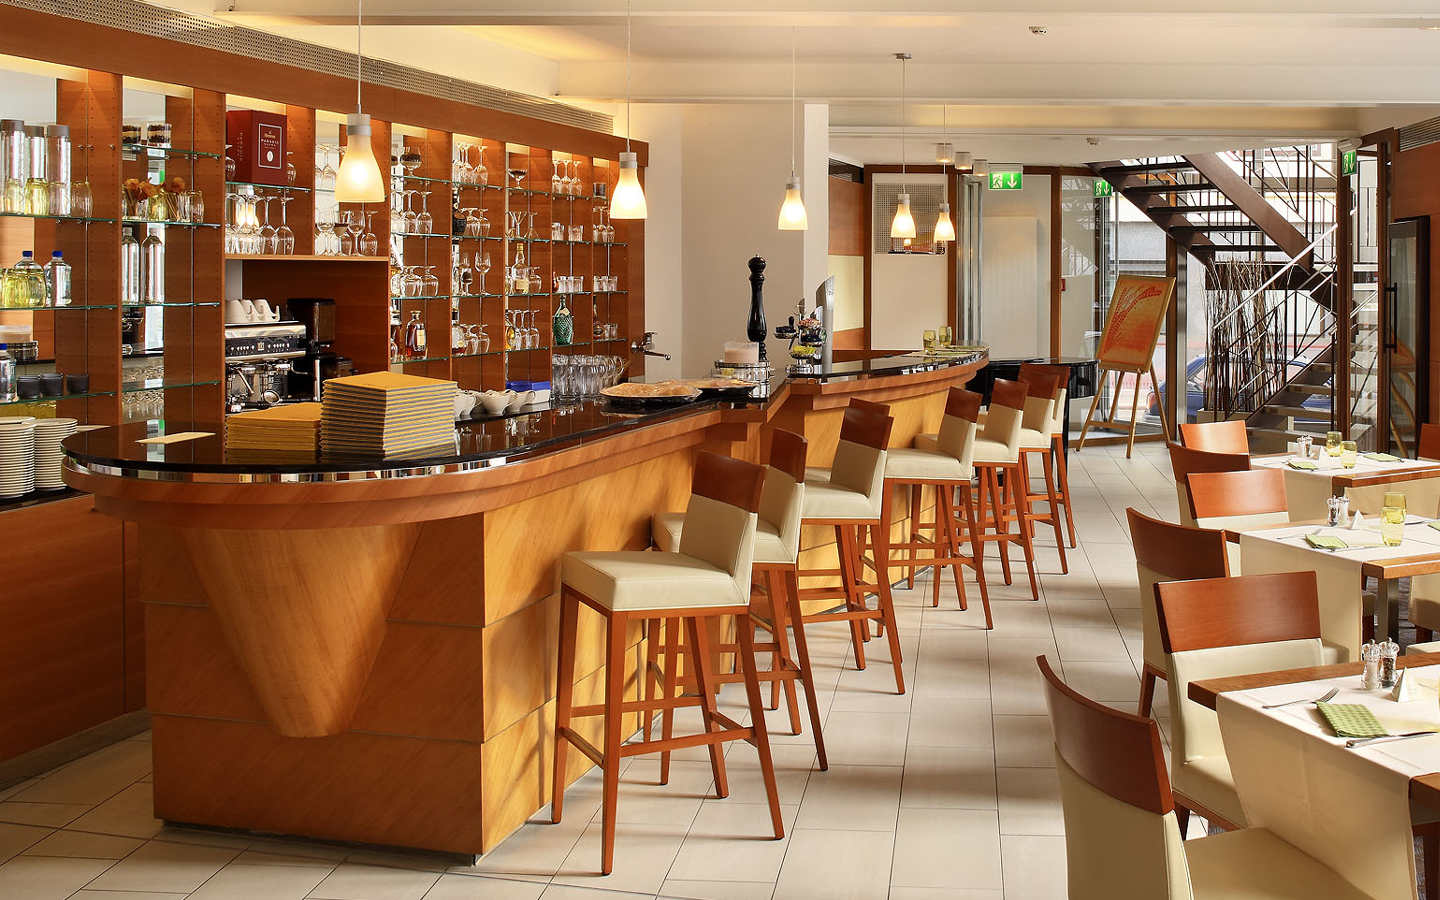 Hotel De France - Restaurant No.3 - Bar